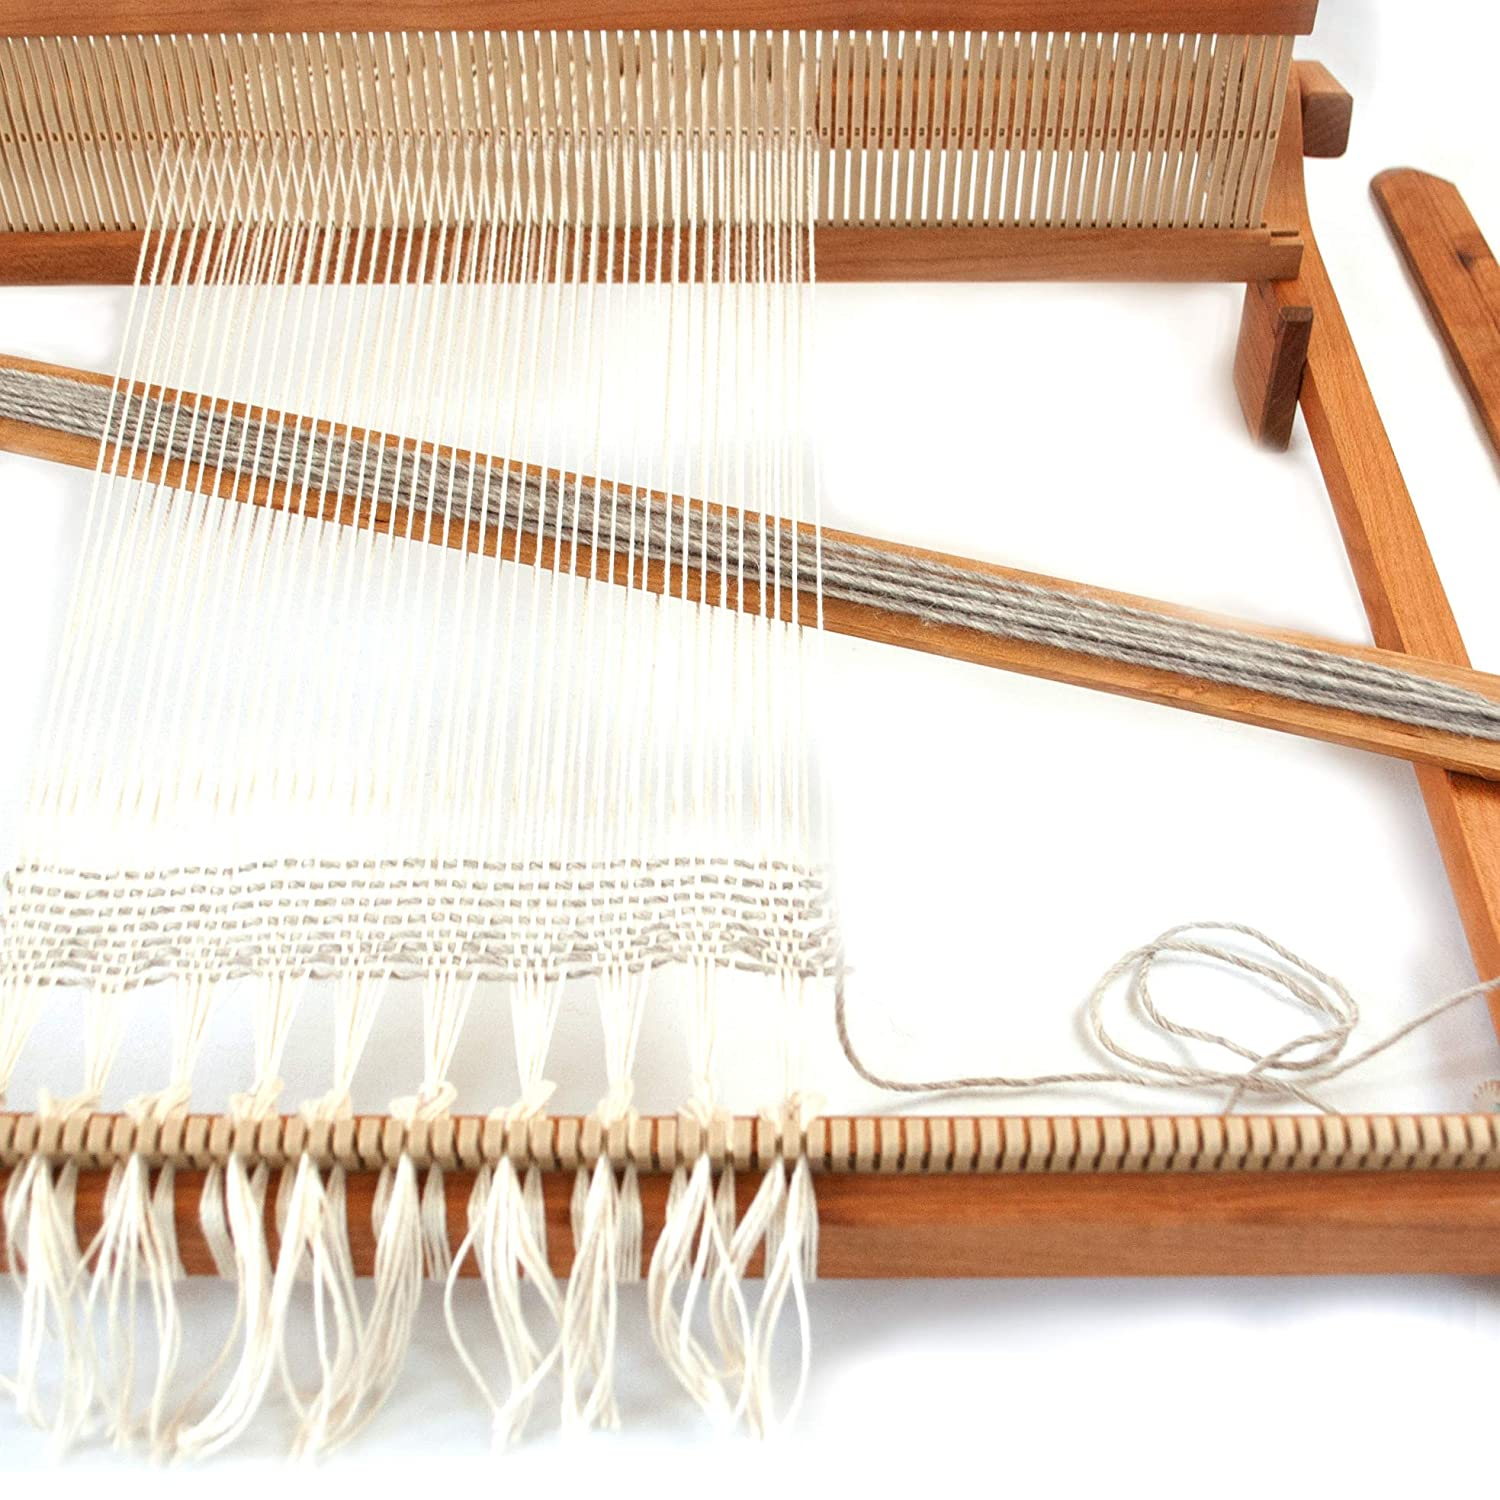 Beka Original Rigid Heddle Loom, SG-20 SG-20